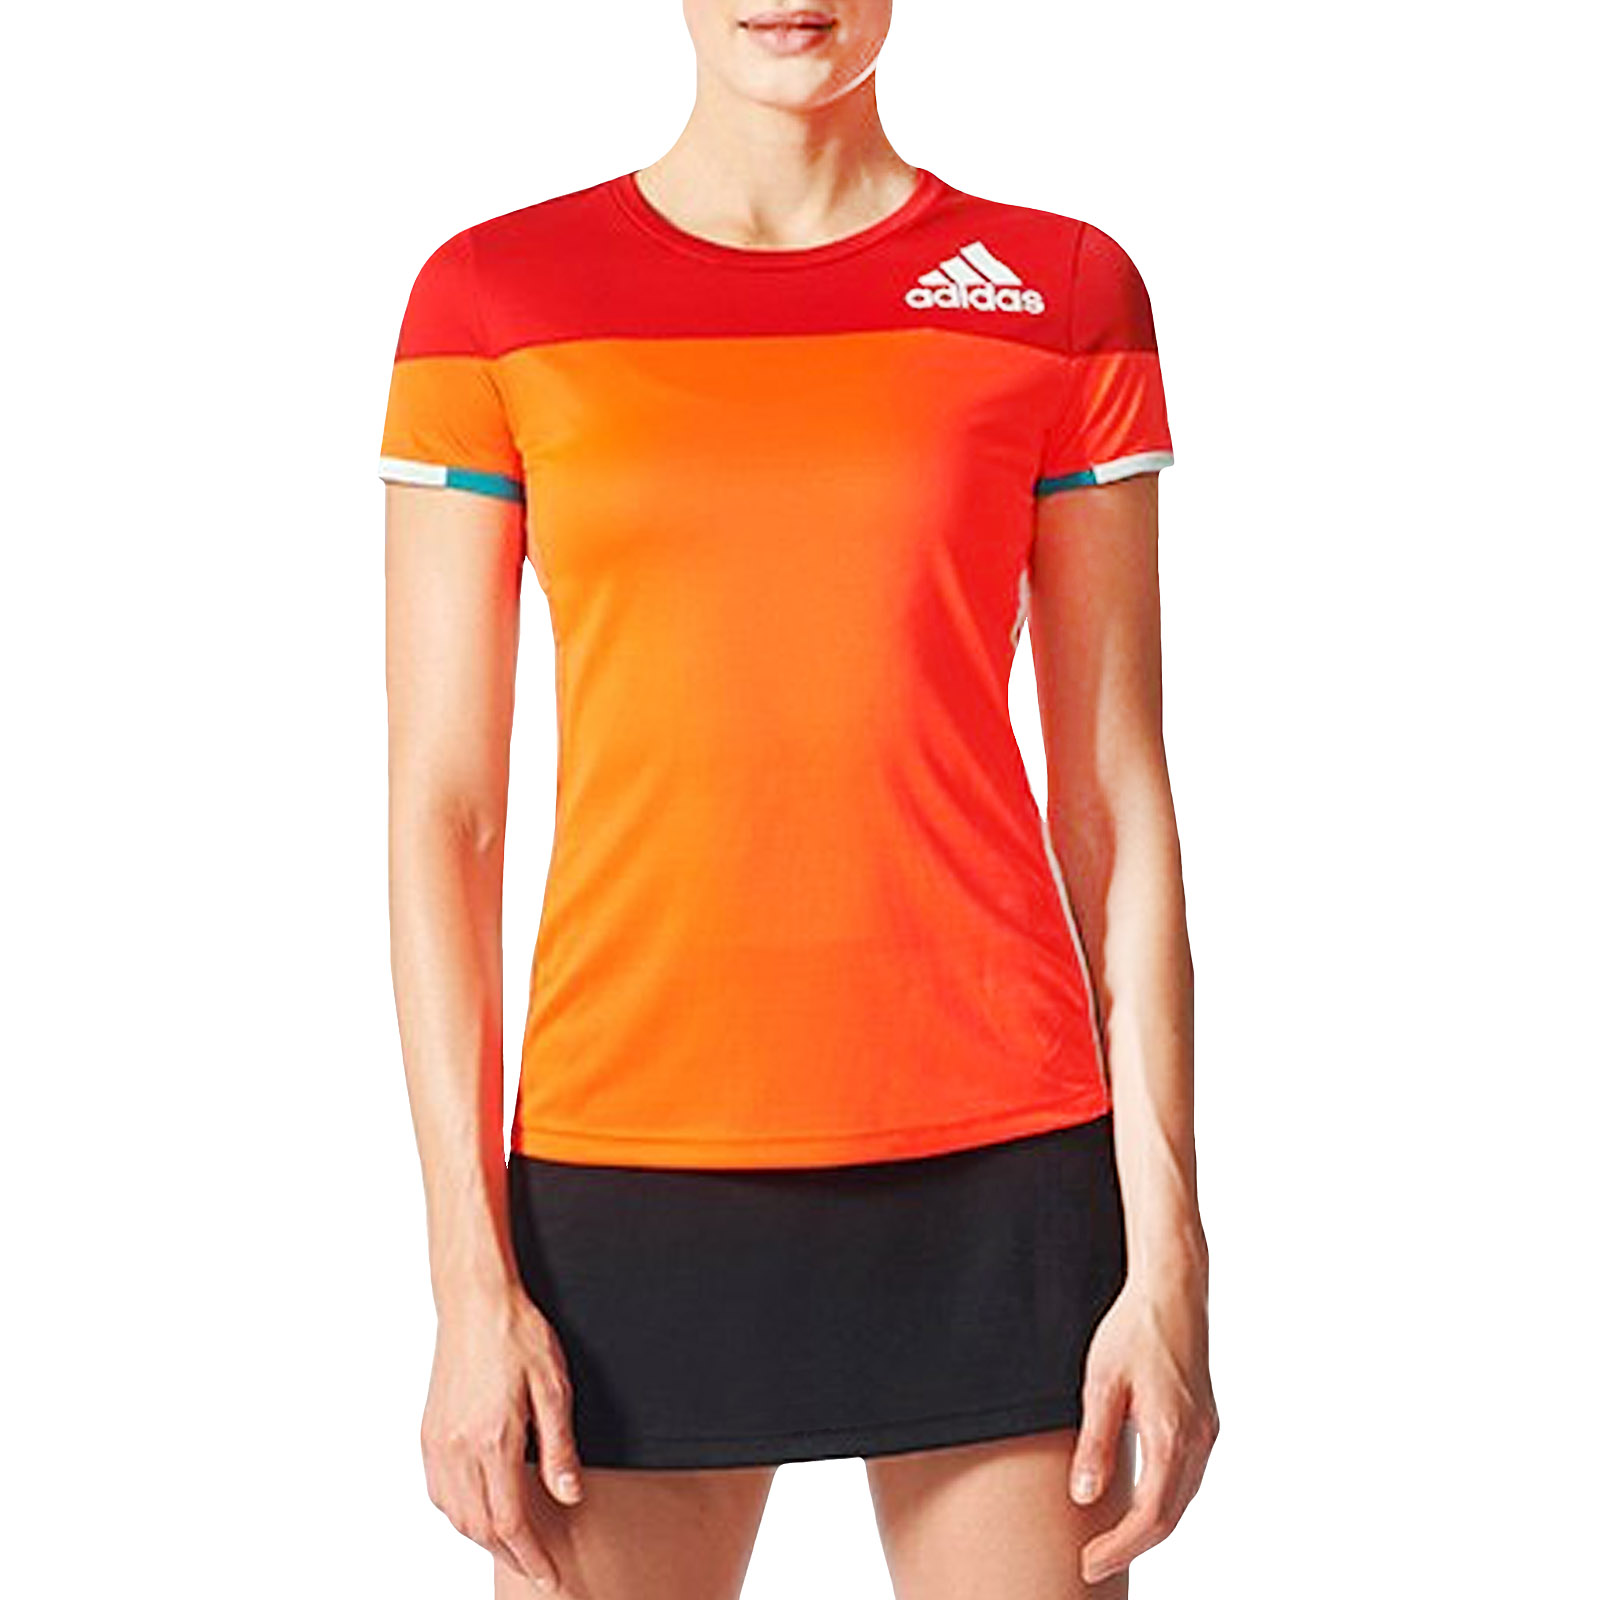 efbe977ffd803 Details about adidas Performance Womens Colorblock Badminton Sports  Training T-Shirt Top - Red